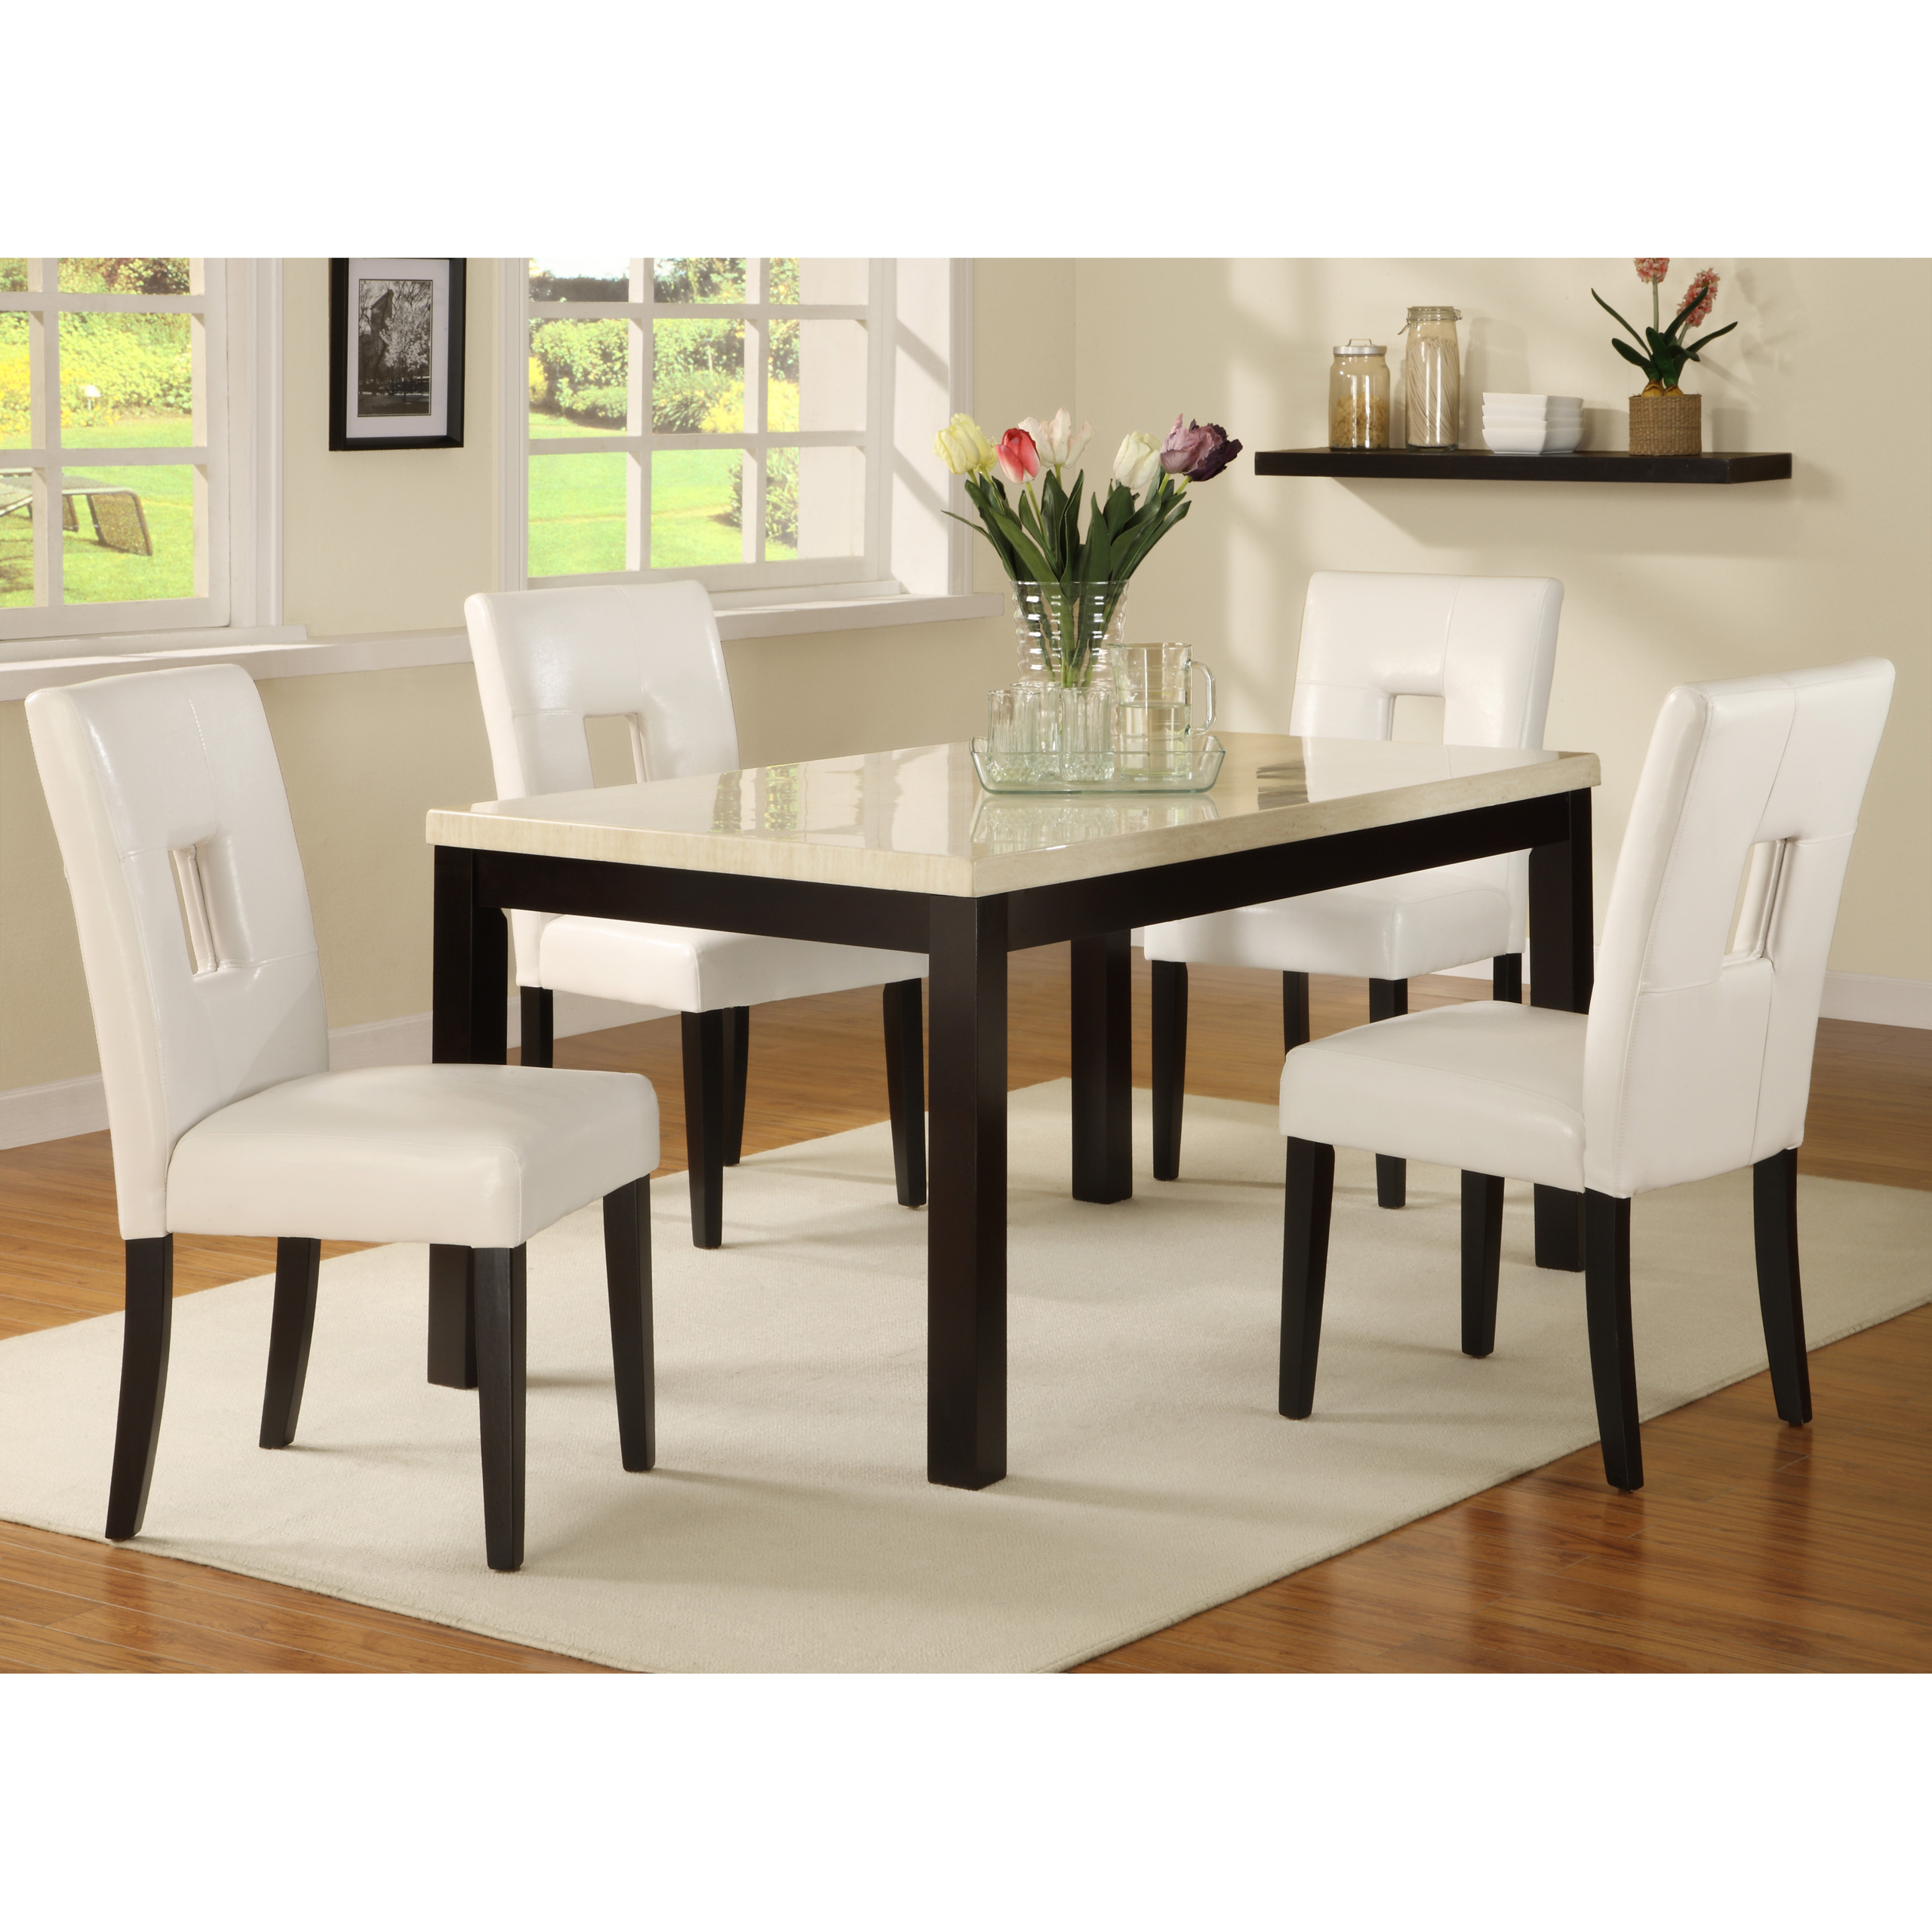 Ethan home mendoza 5 piece white 60 inch dining set